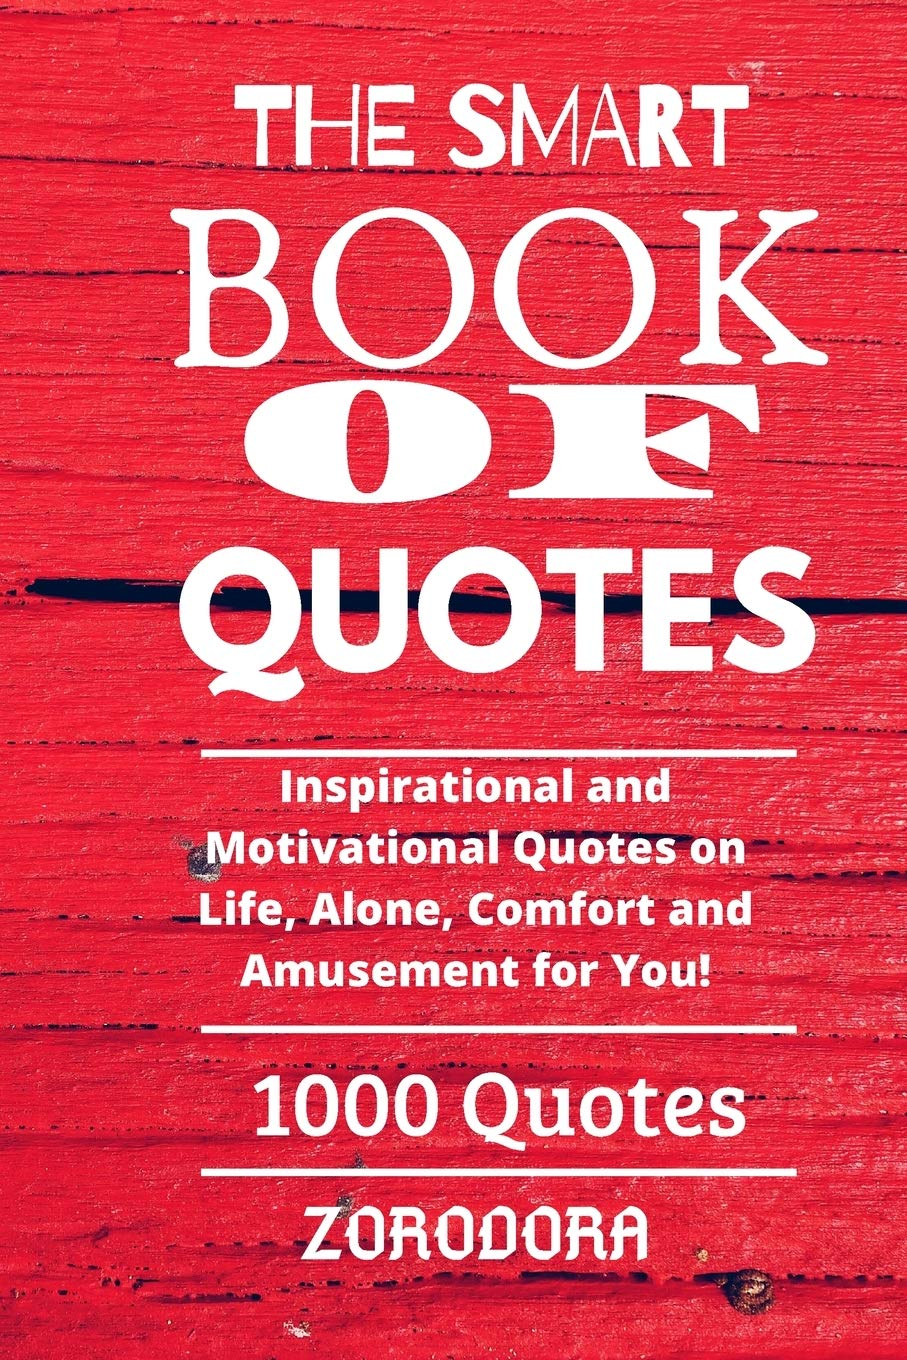 The Smart Book Of Quotes 1000 Quotes Inspirational And Motivational Quotes On Life Alone Comfort And Amusement For You Dora Zoro 9798623098887 Amazon Com Books